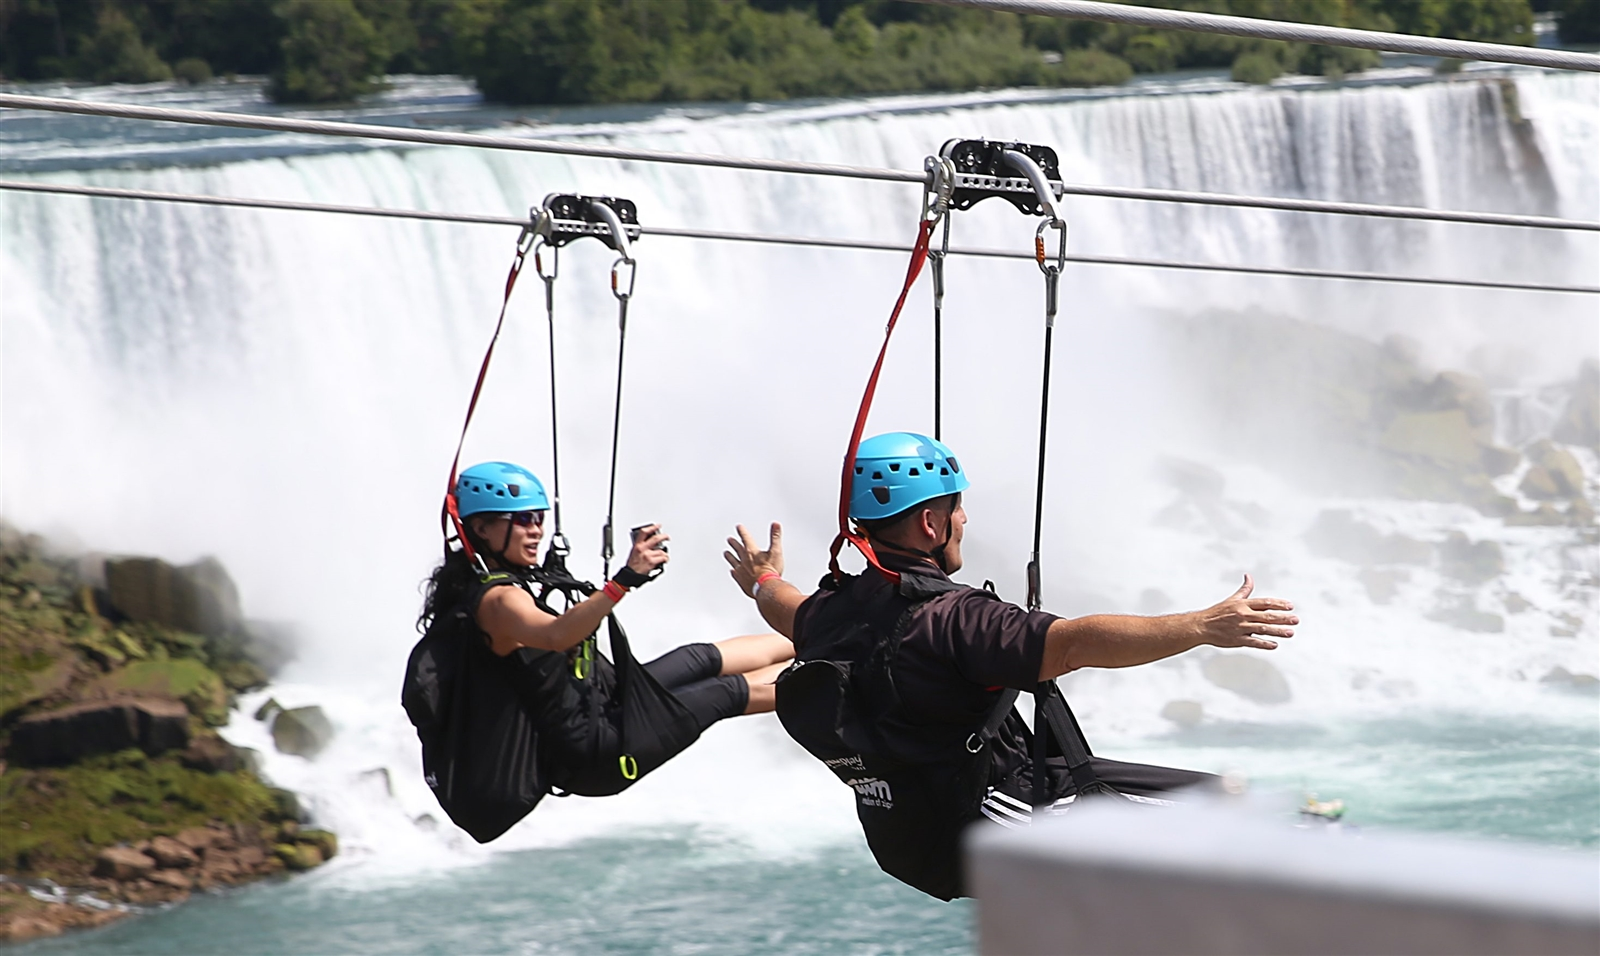 Riders on the new 'MistRider' zip line, which officially opened today on the Canadian side of Niagara Falls. (Sharon Cantillon/The Buffalo News)